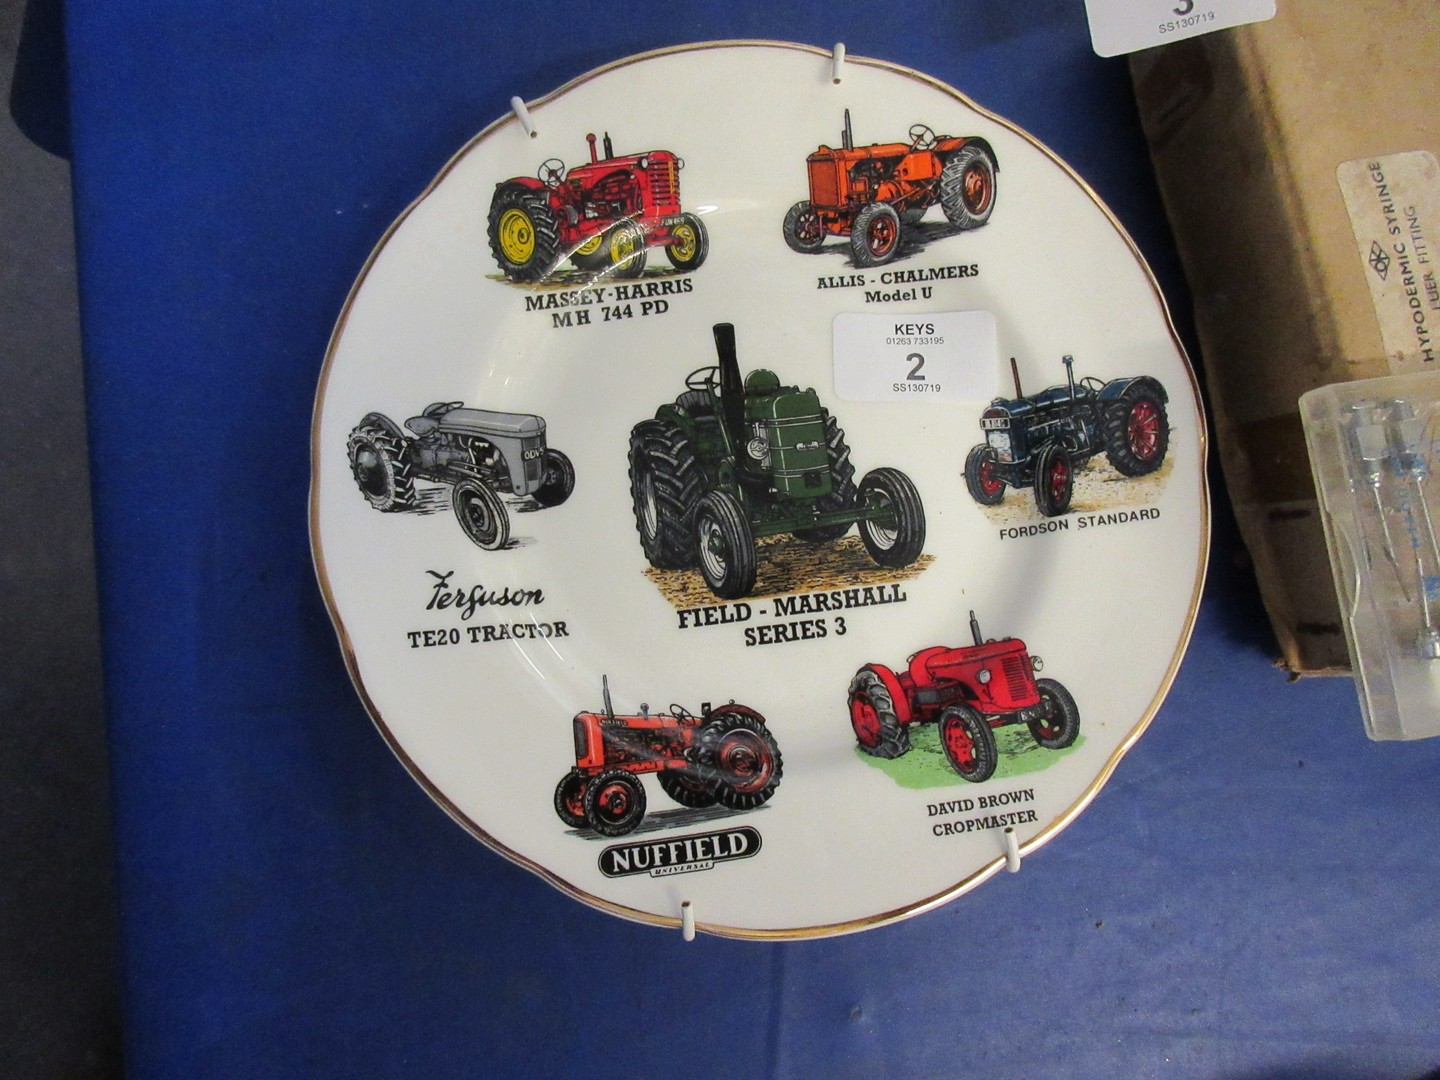 Collectors plate in English fine China featuring various vintage tractors including Massey Harris